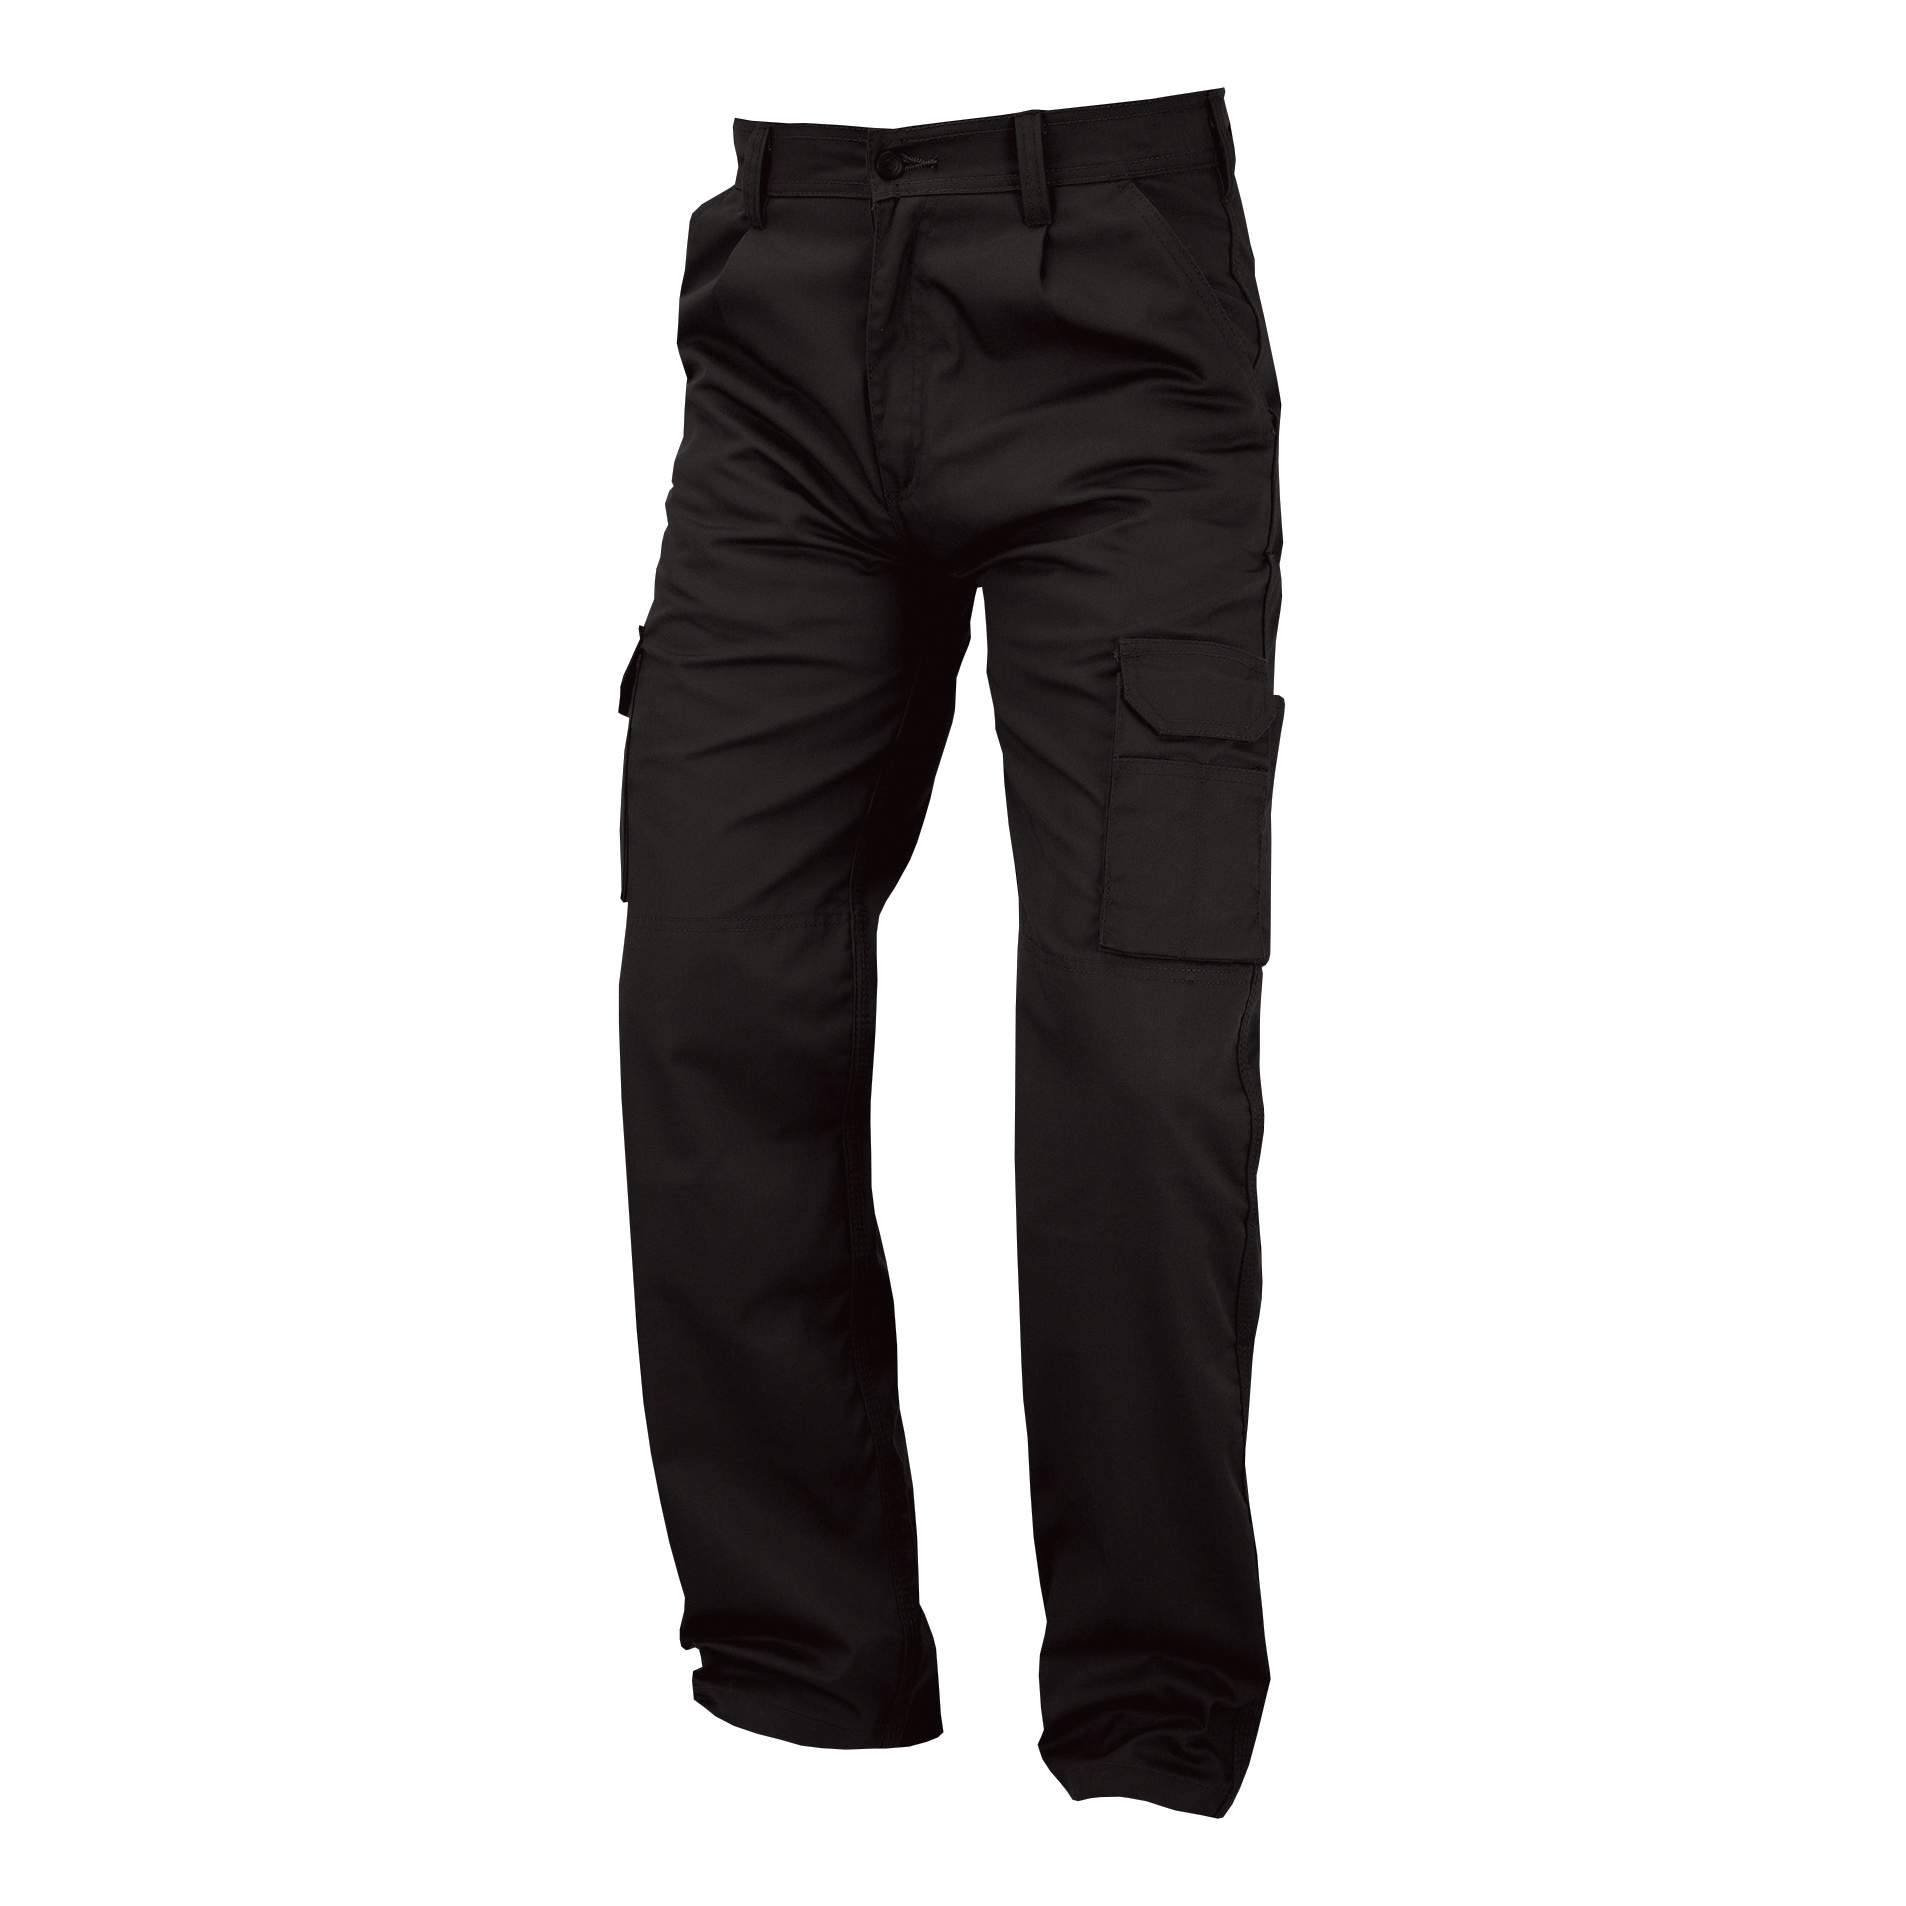 Combat Trouser Multi-functional Waist 30in Leg 29in Black Ref PCTHWBL30S *Approx 3 Day Leadtime*